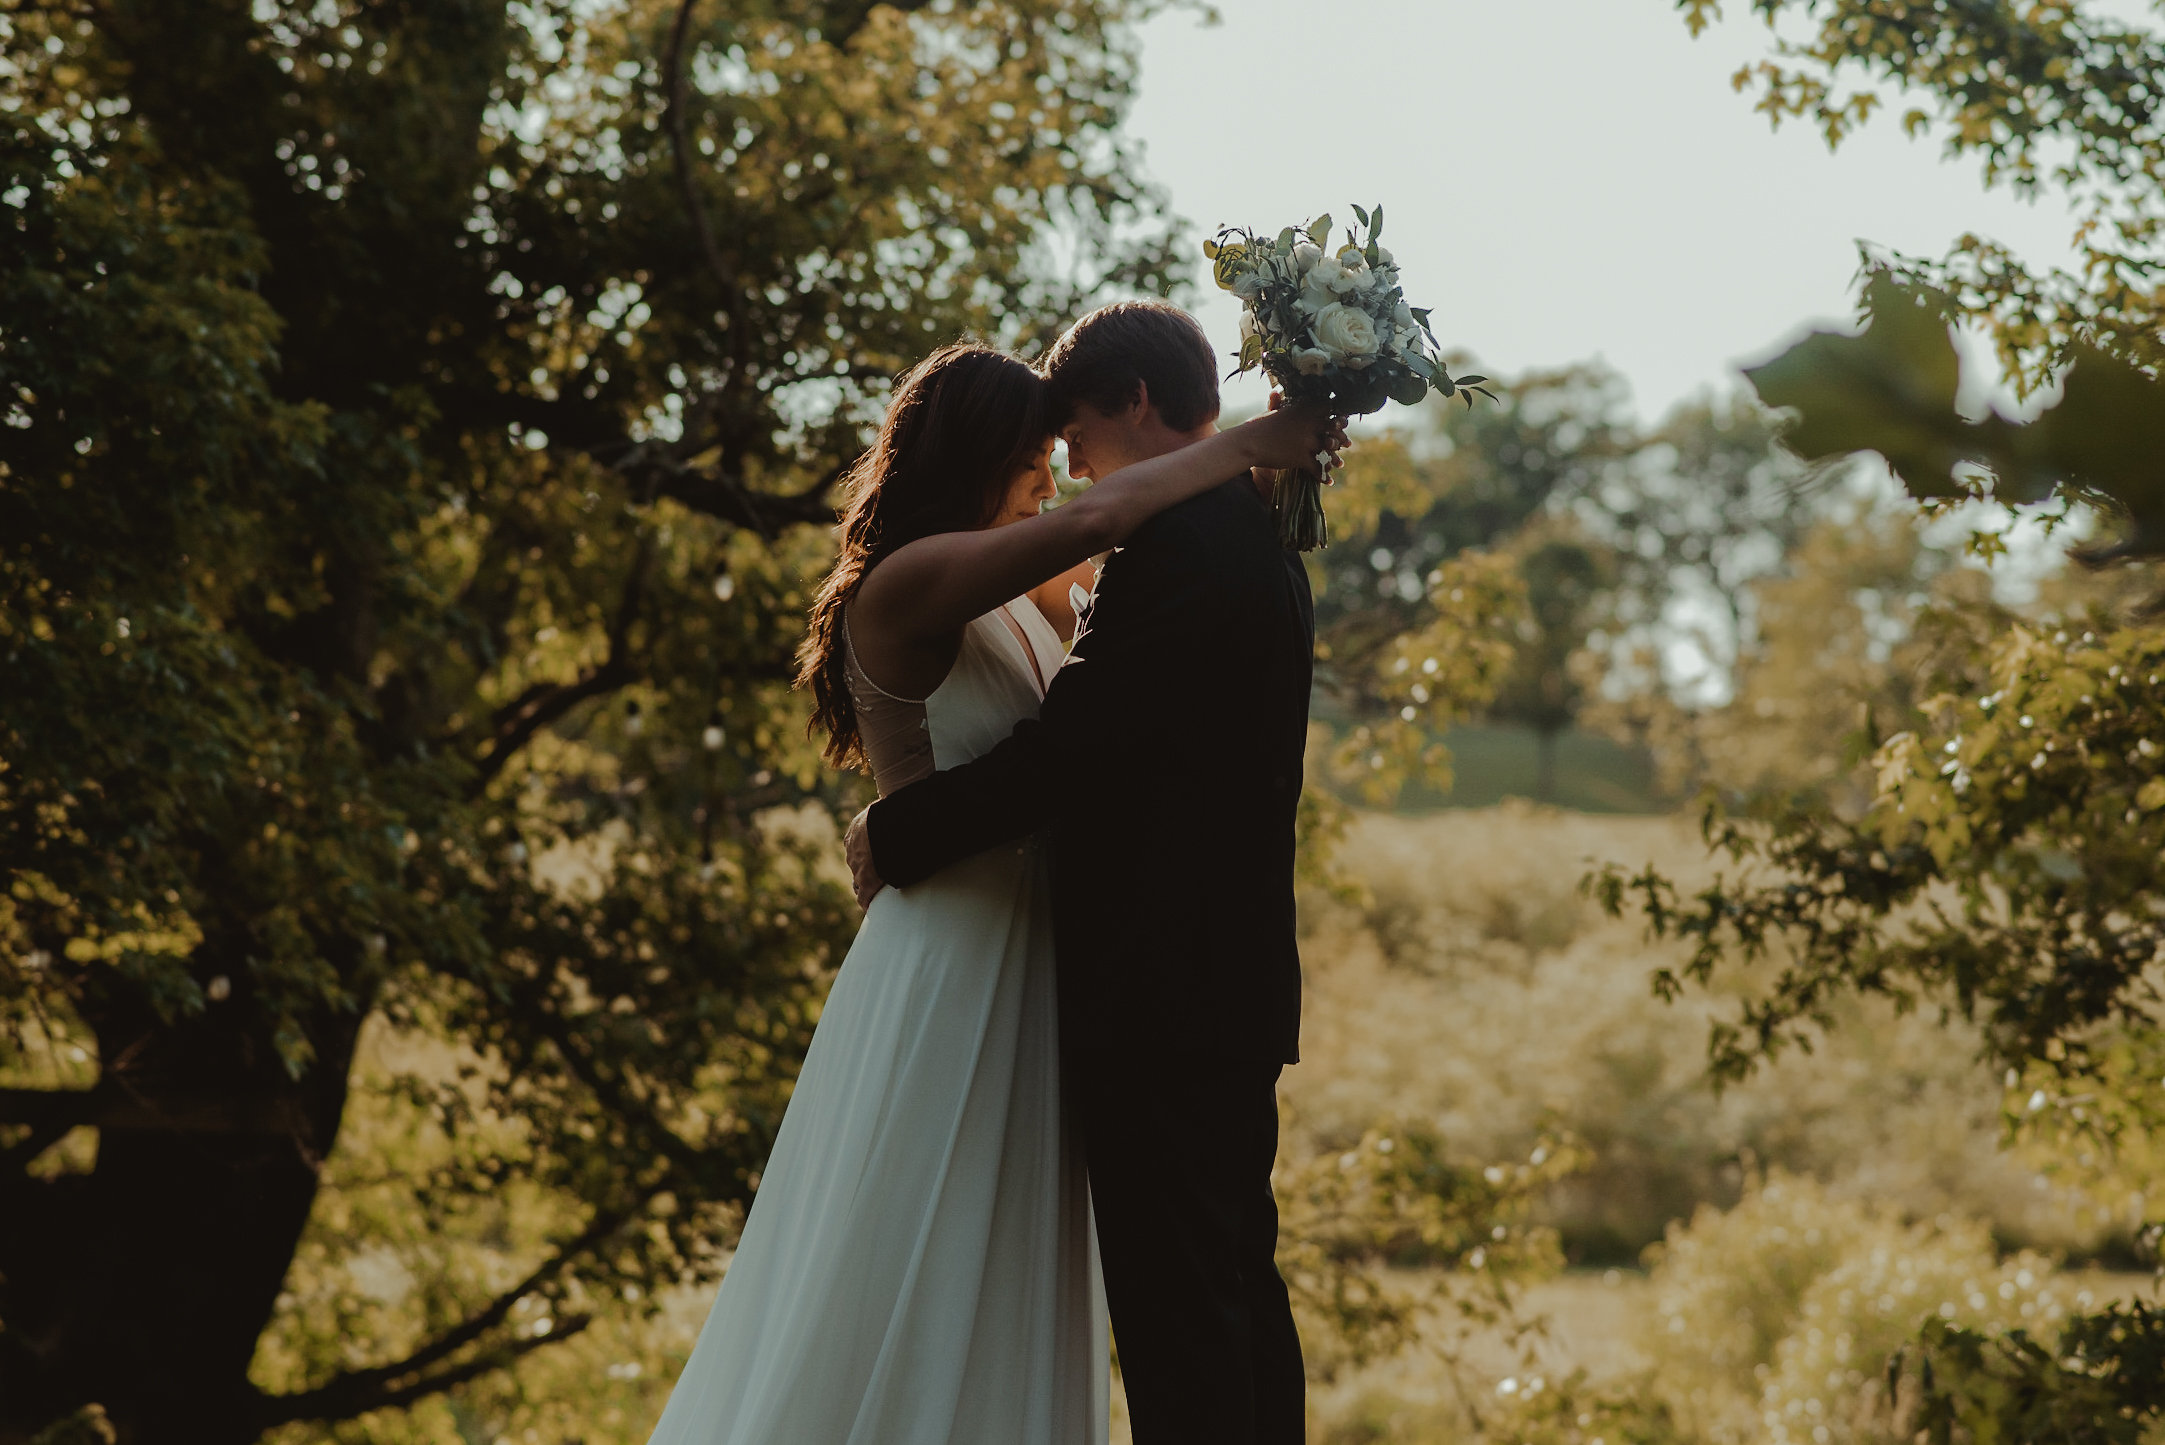 Bride and groom embracing in sunlight